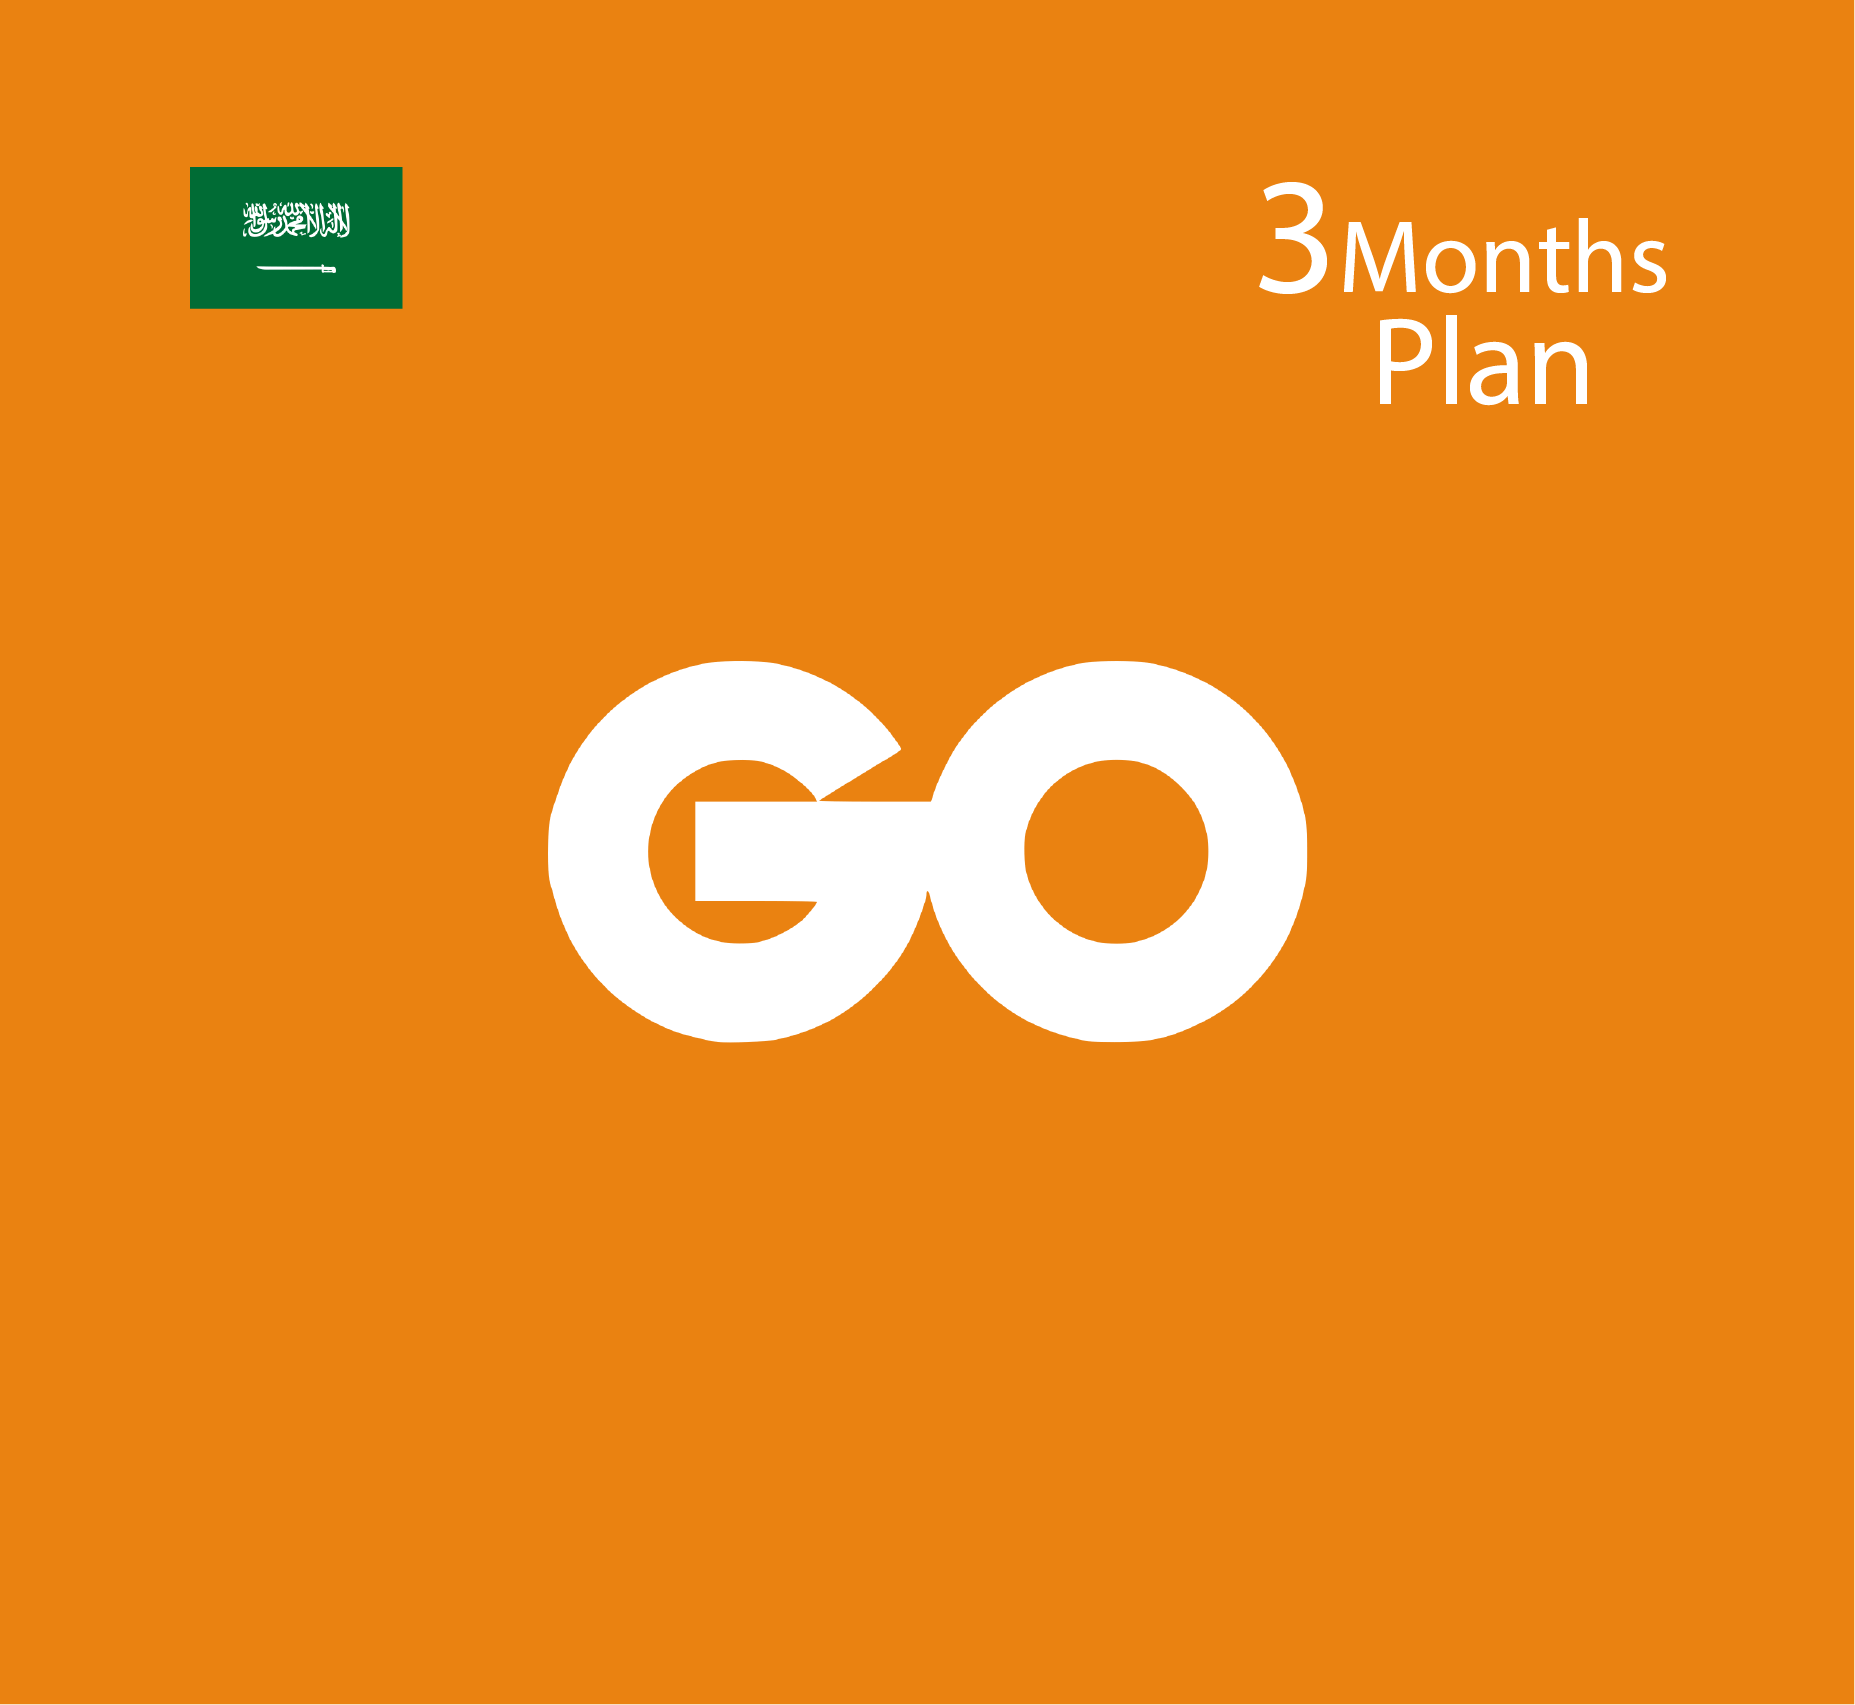 Go Card [KSA] - 3 Months Plan